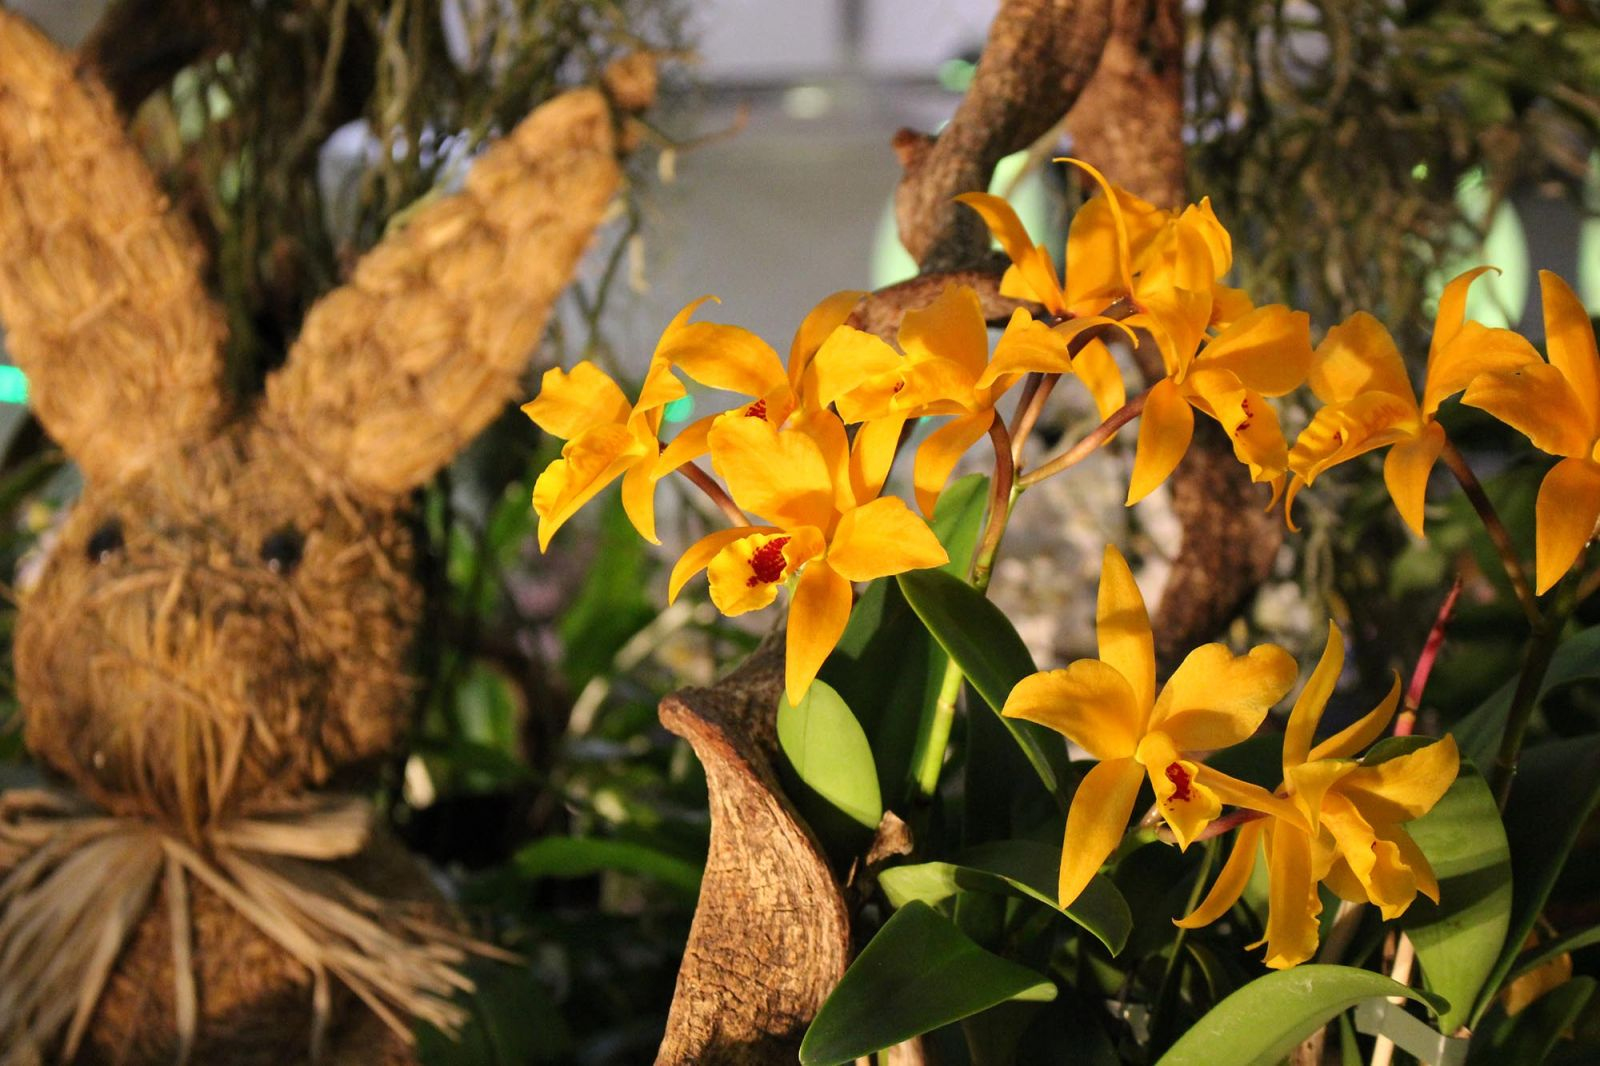 Messe Dresden Internationale Orchideen-Welt